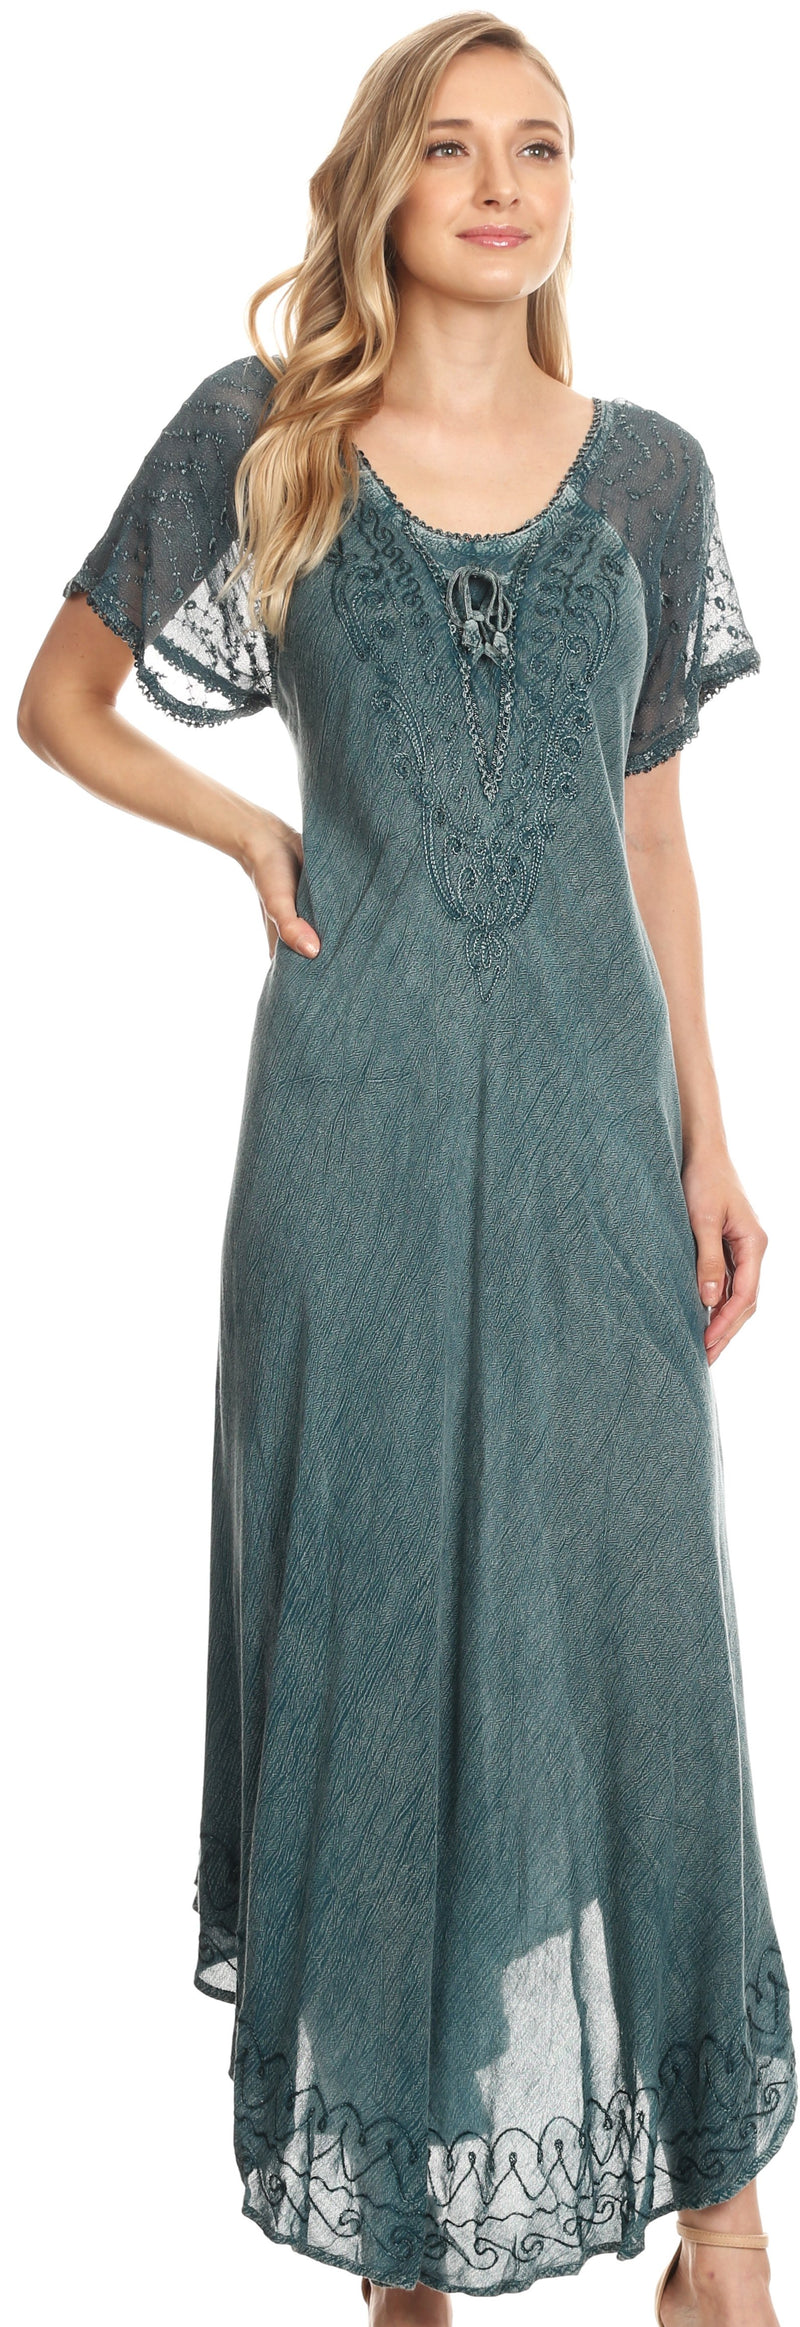 Sakkas Egan Long Embroidered Caftan Dress / Cover Up With Embroidered Cap Sleeves